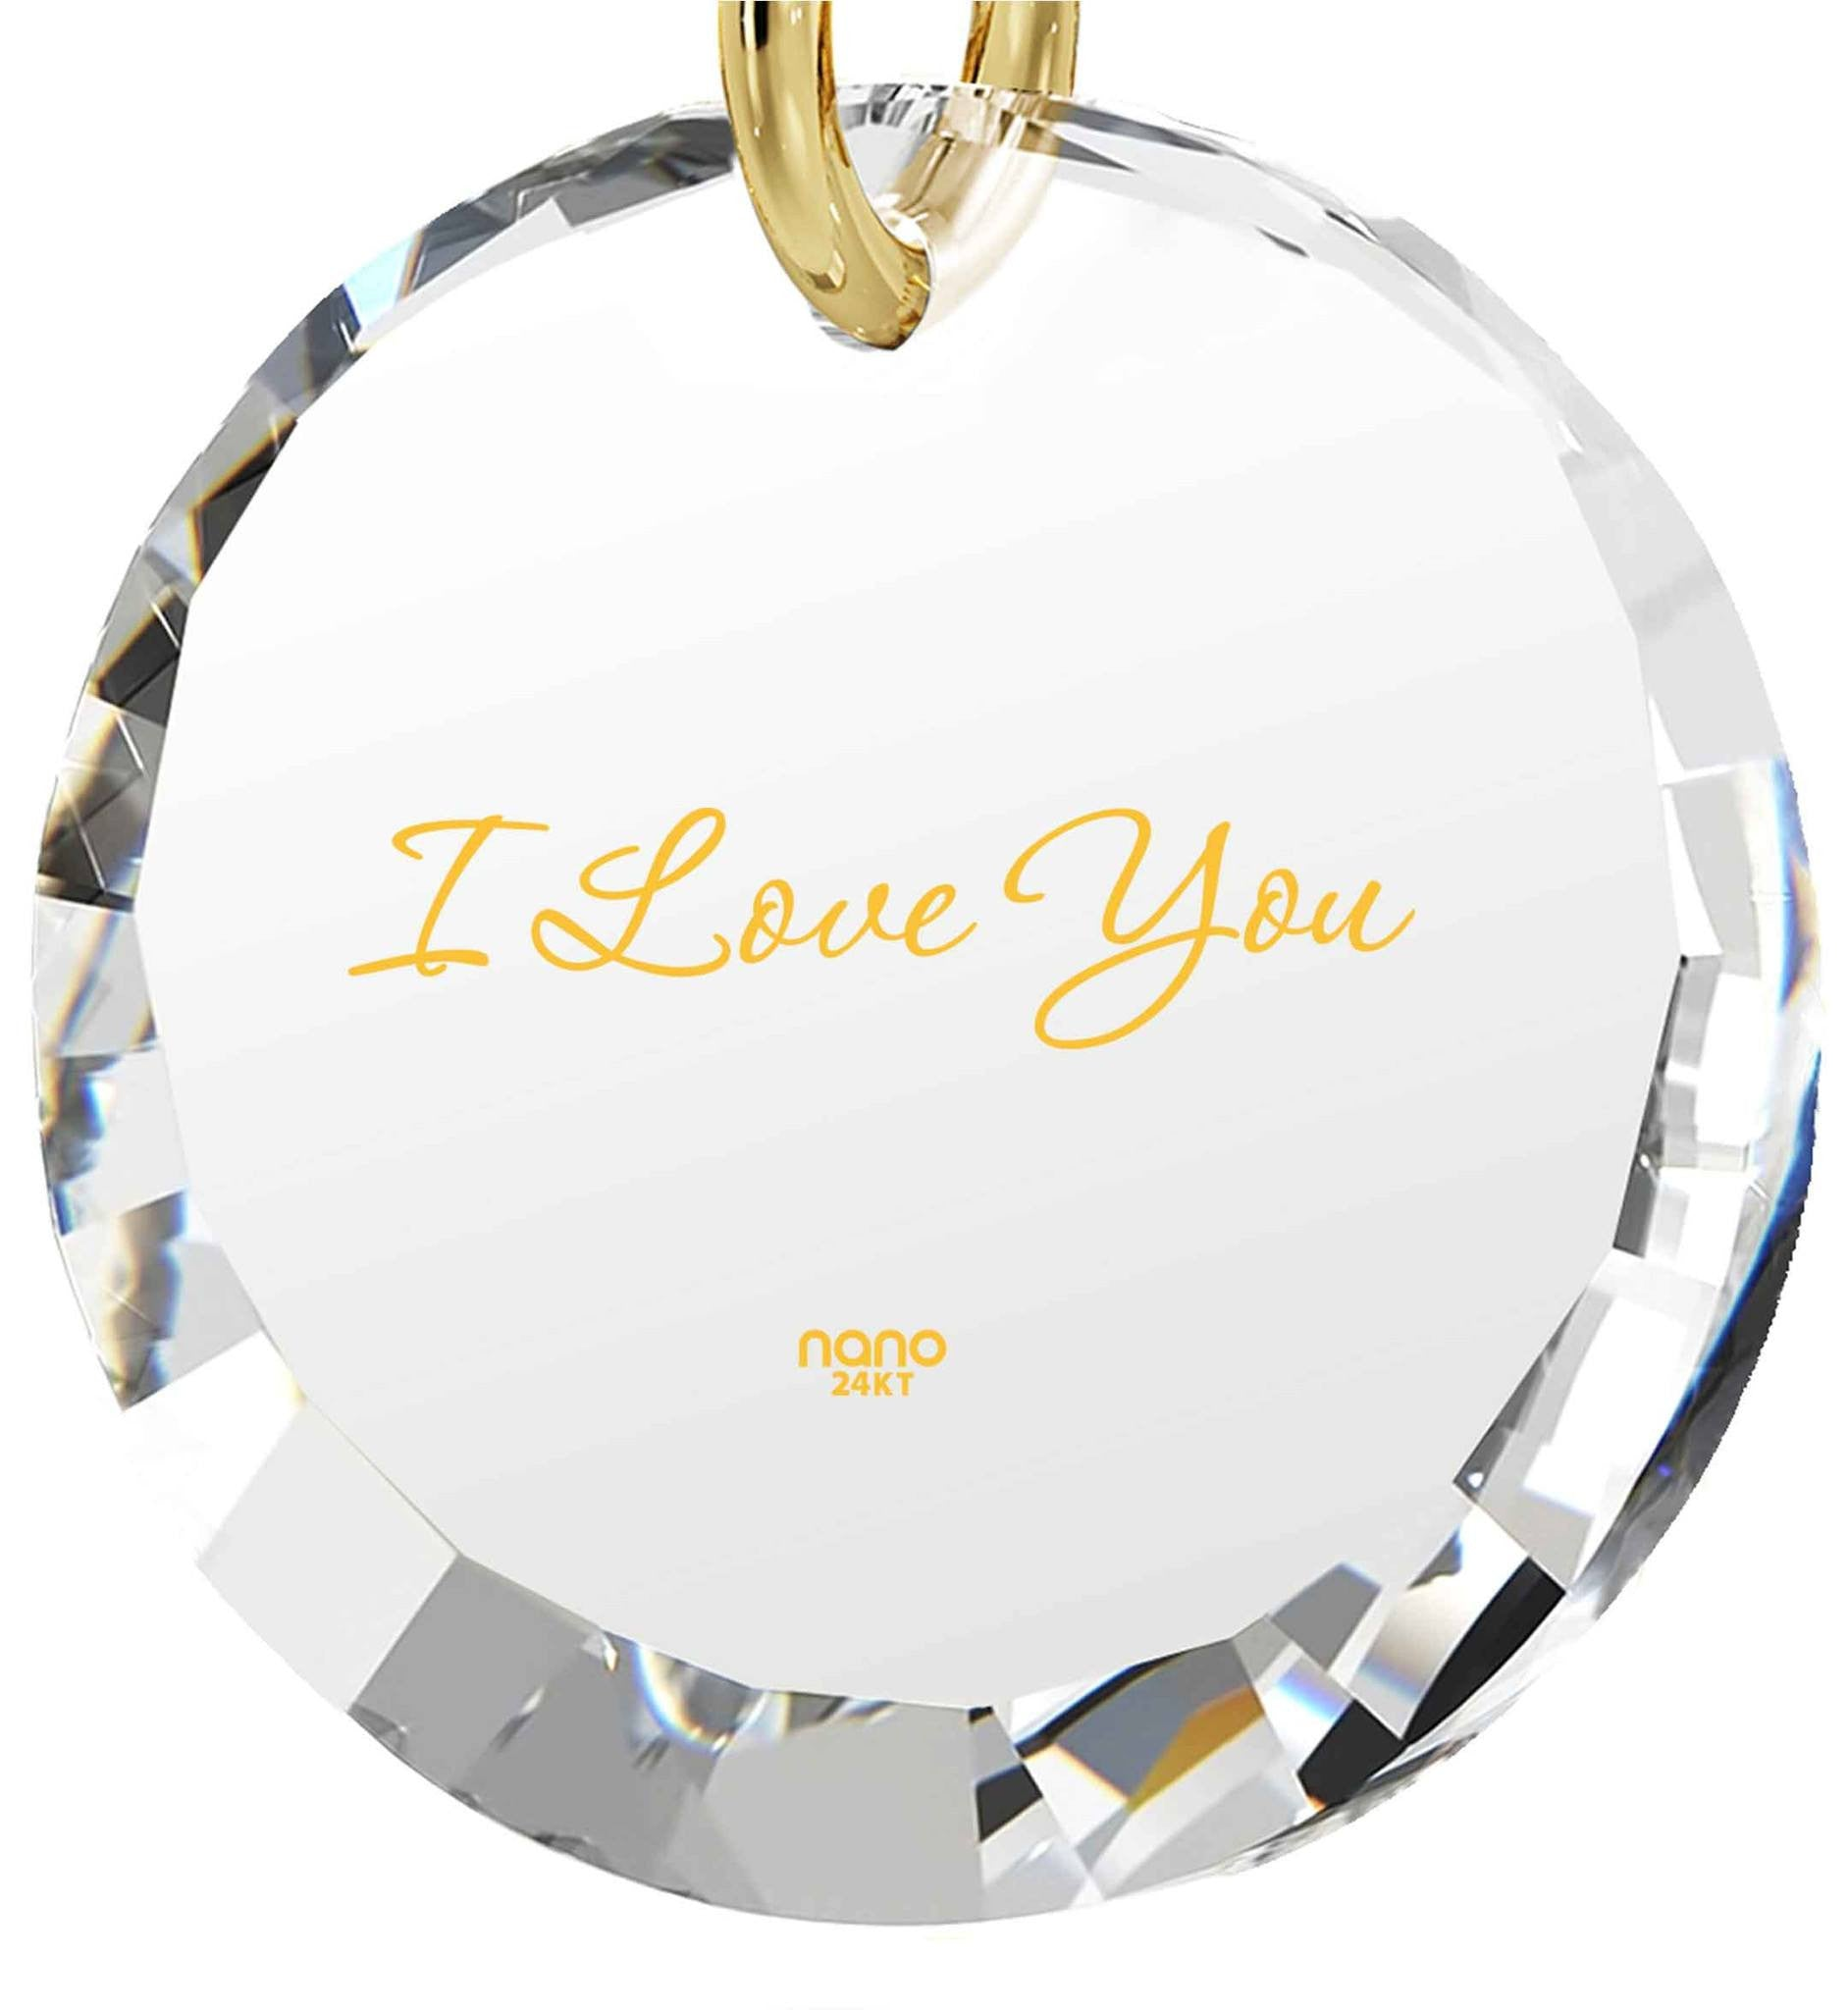 Girlfriend Birthday Ideas, 24k Engraved Pendant, CZ Jewelry, Fun Gifts for Women, Nano